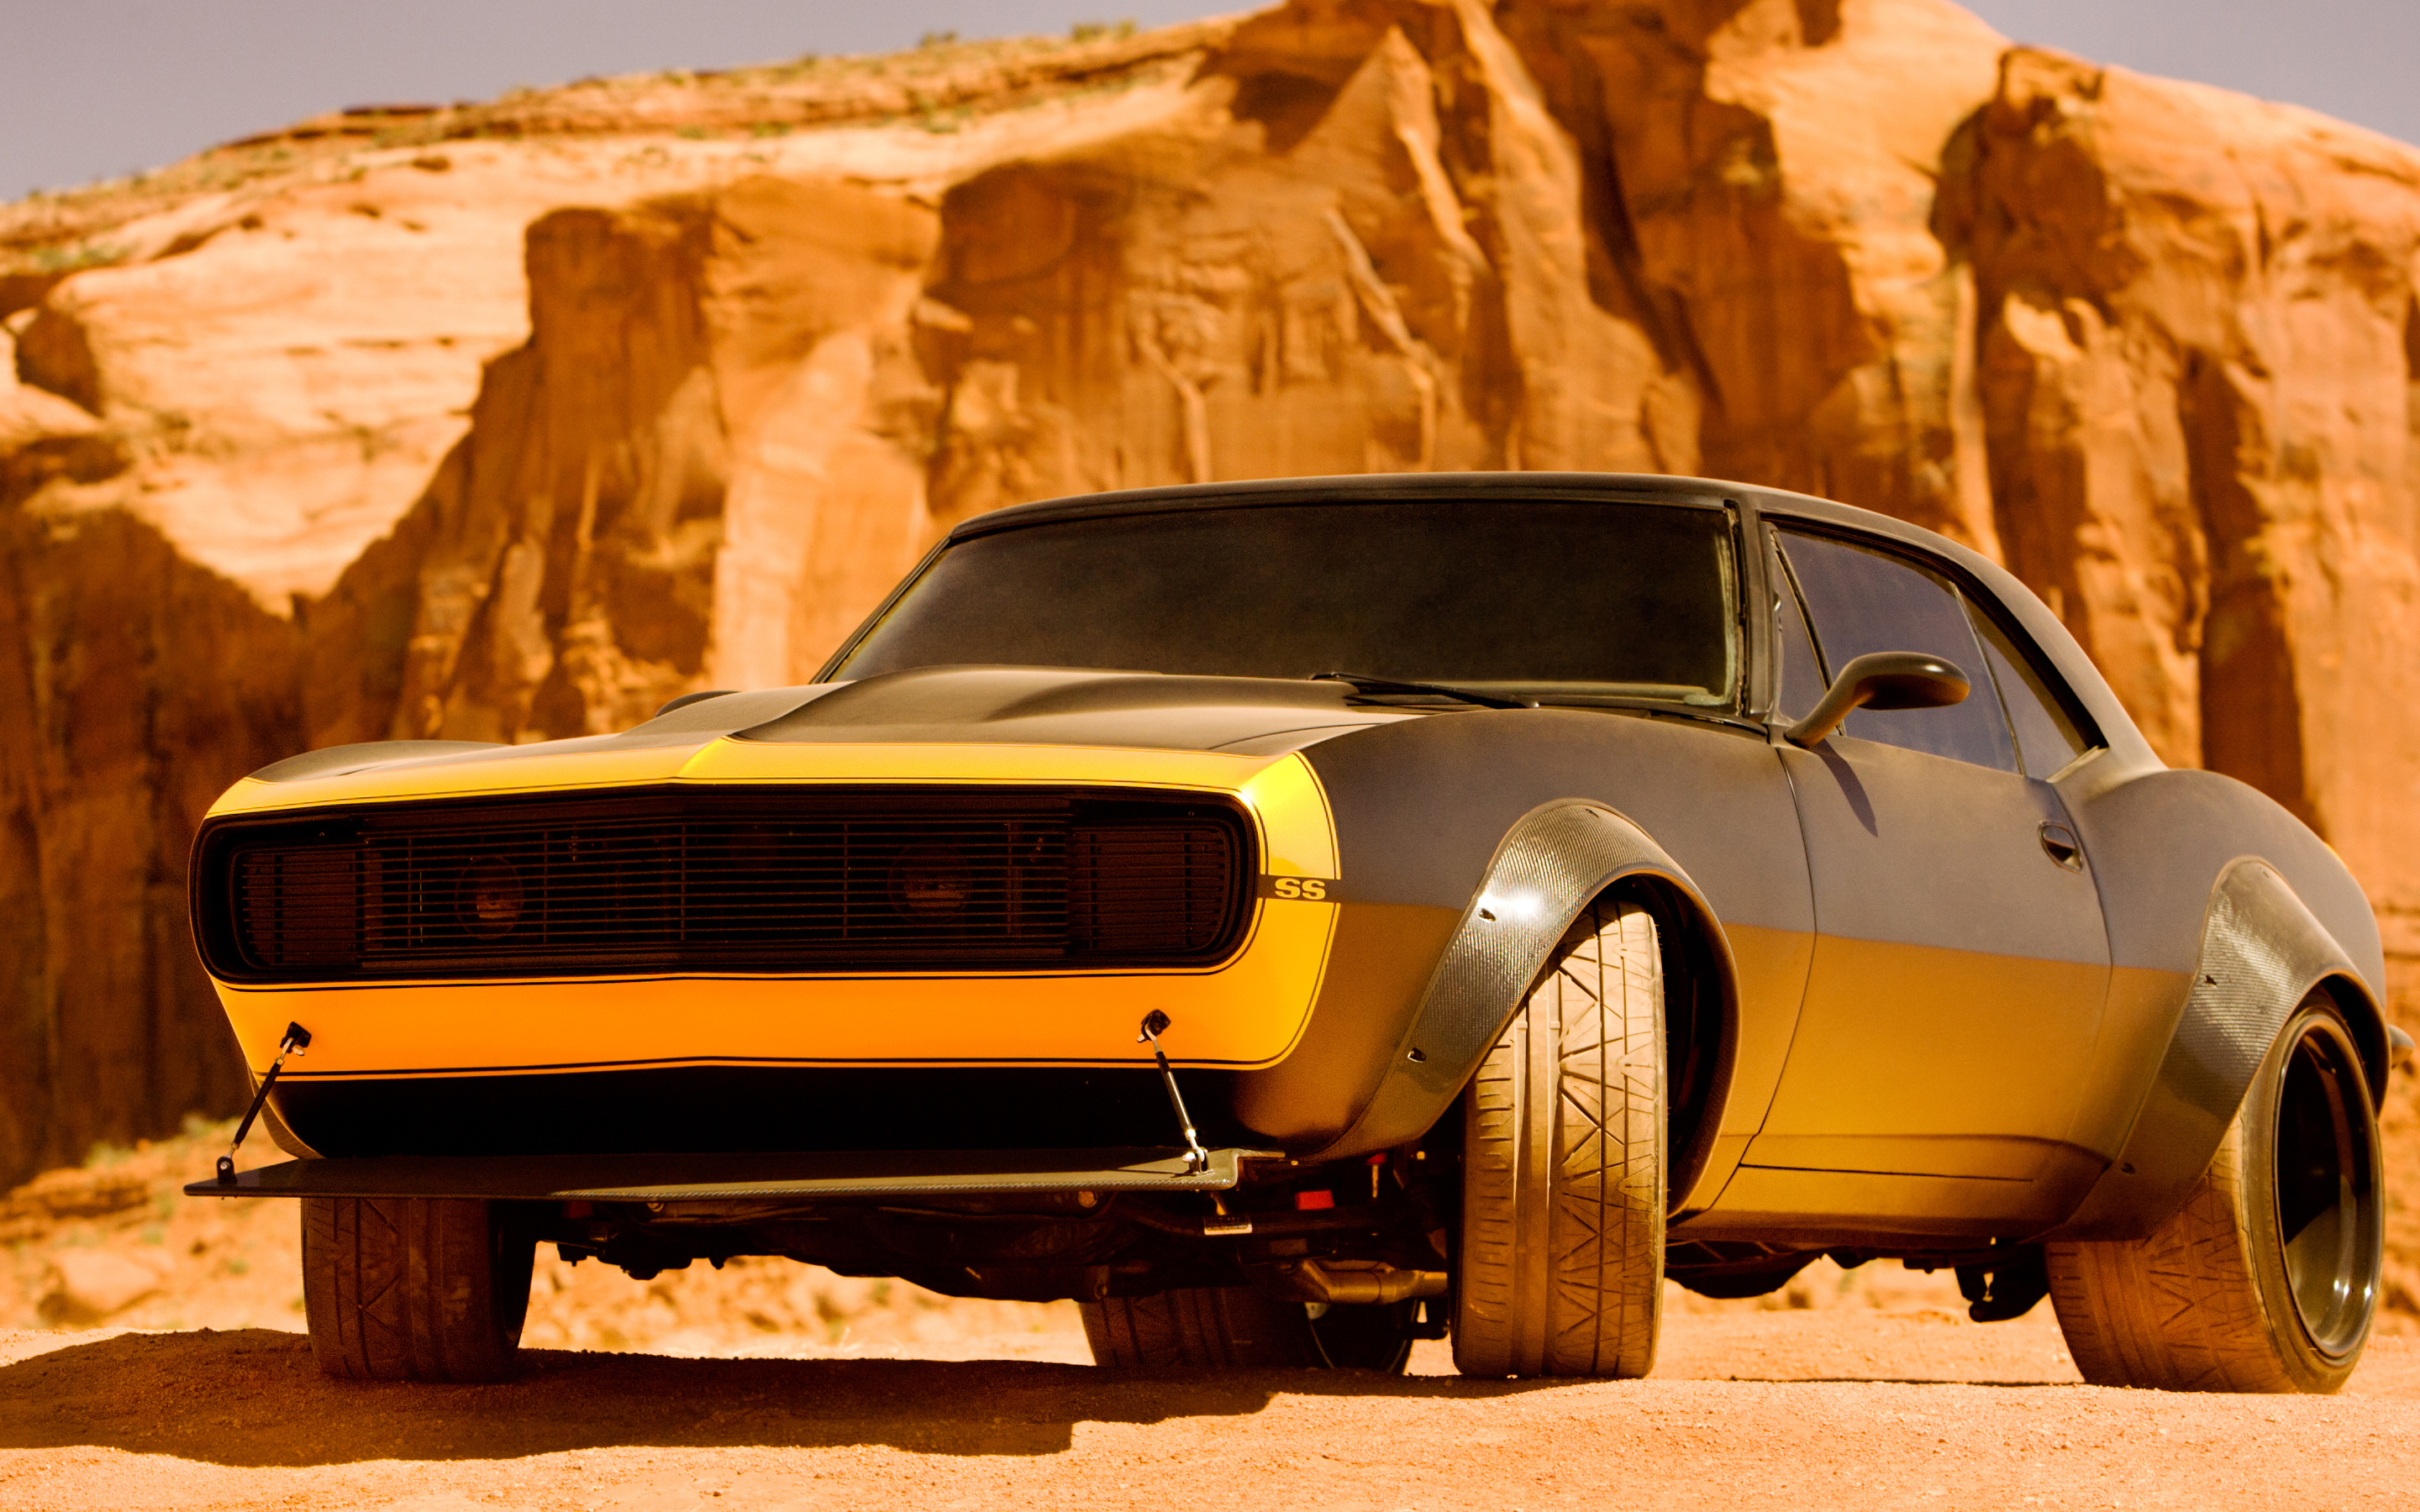 transformers 4 bumblebee camaro wallpapers | wallpapers hd